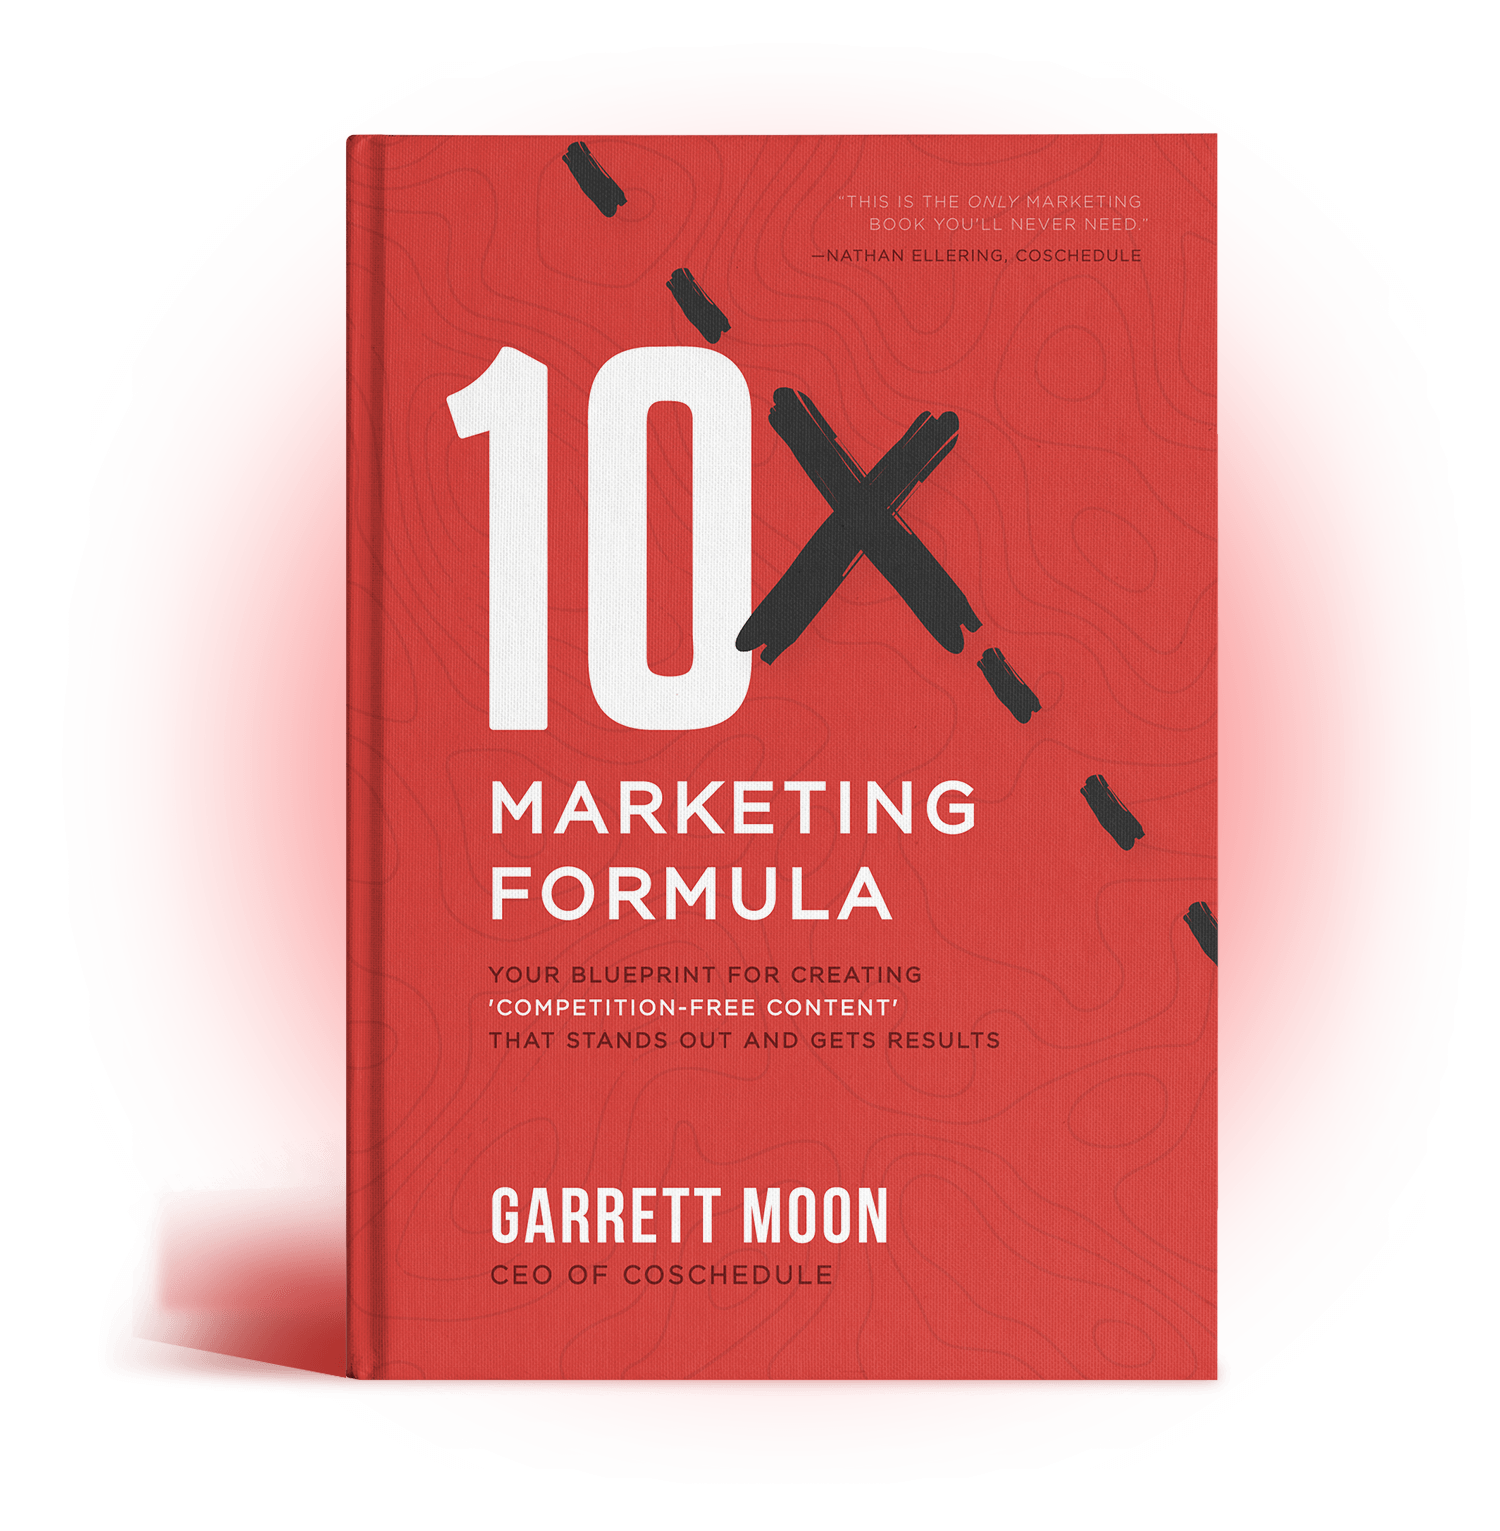 10x Marketing Formula For Creating Competition-Free Content That Stands Out And Gets Better Results